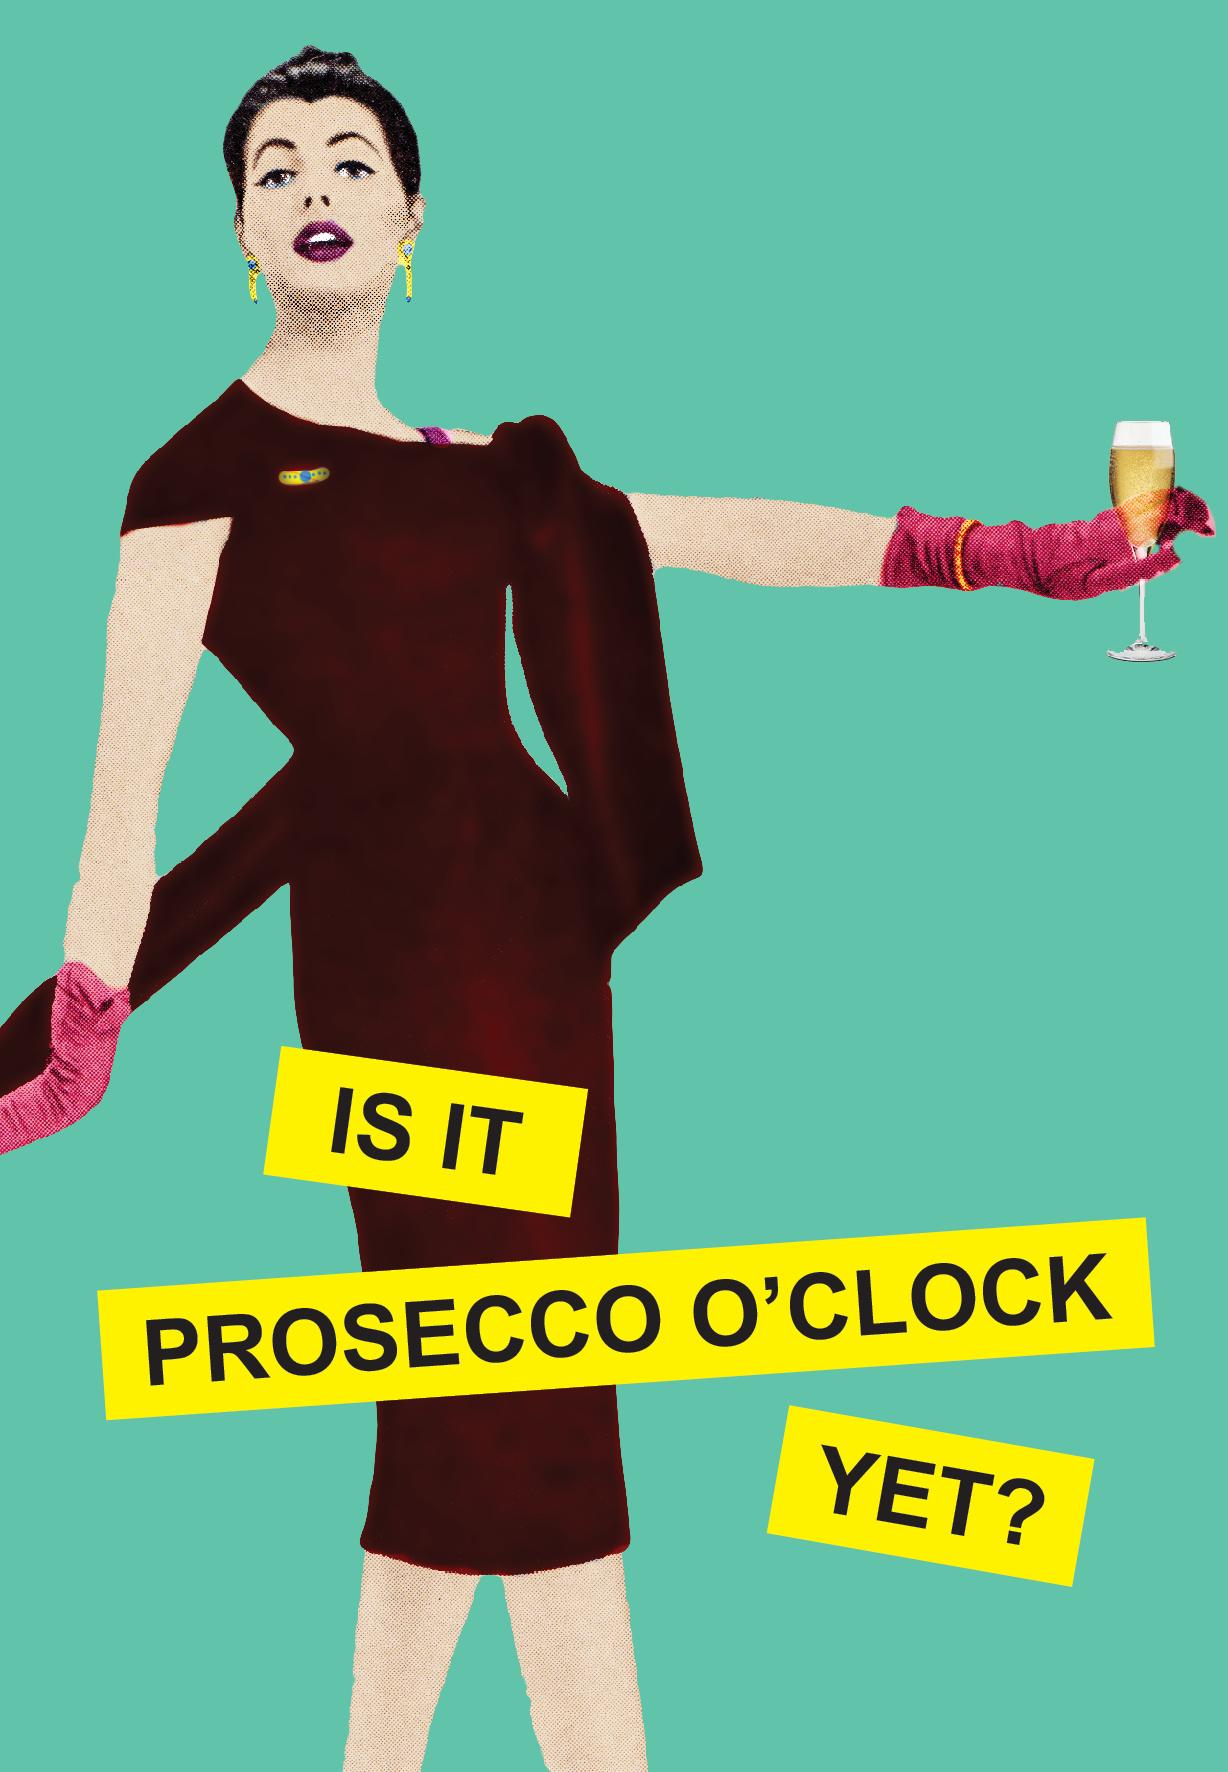 Is it Prosecco O'Clock yet?